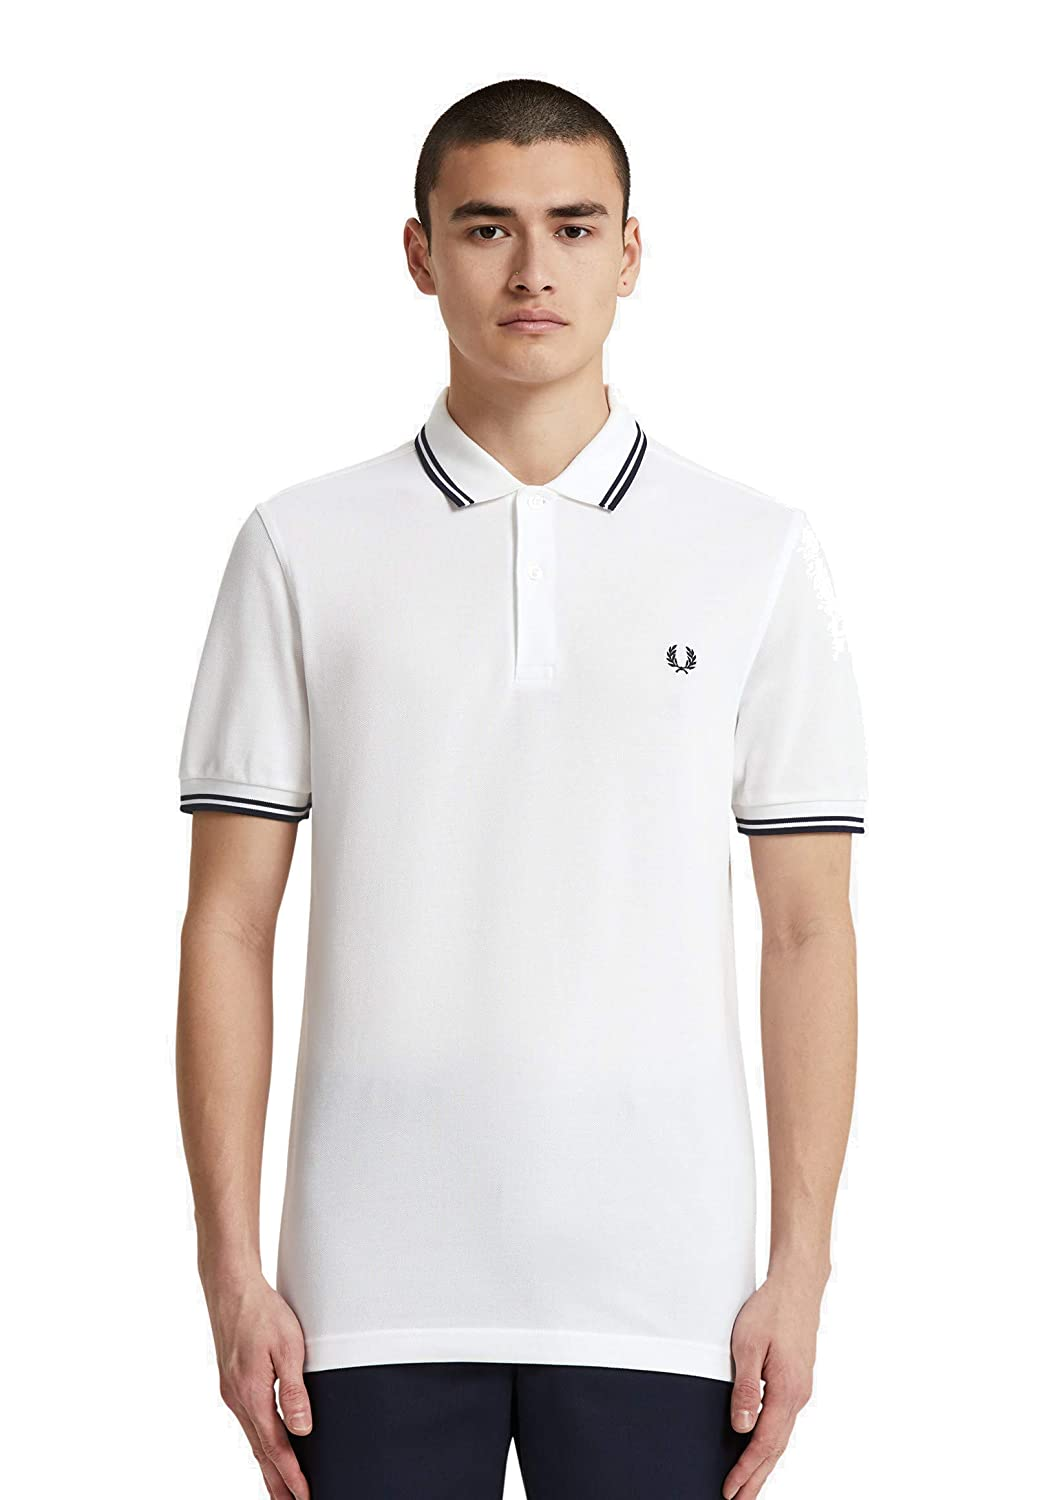 3XL Frouge Perry Twin Tipped Shirt, Polo